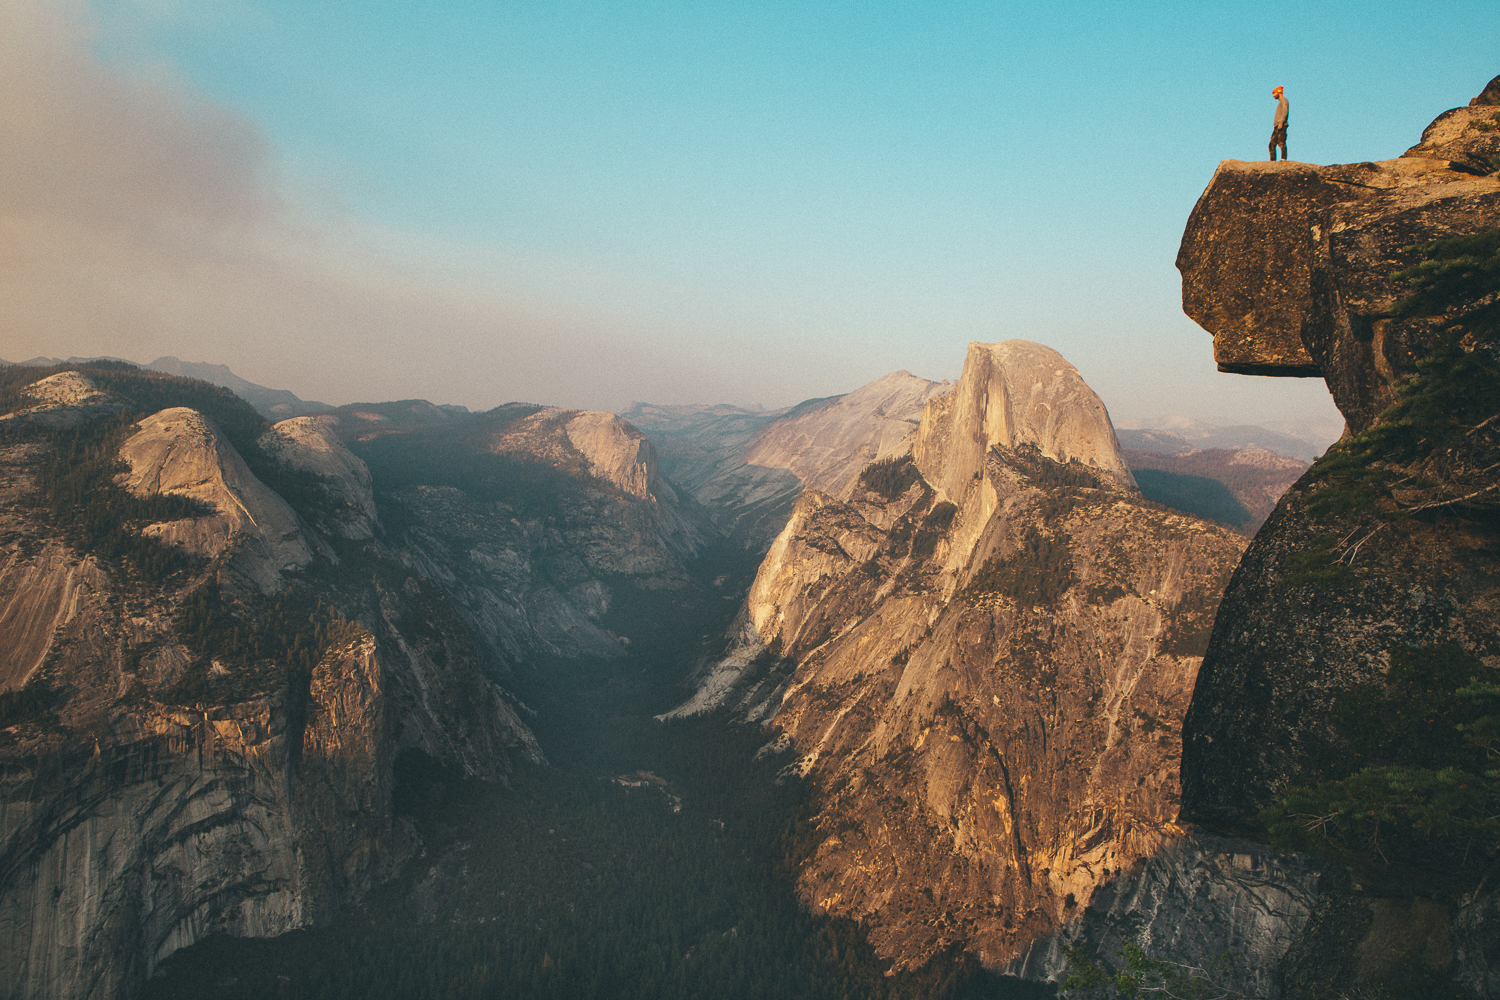 Off the main path at Glacier Point is a highly unadvised trail to the cliff's edge. (...skateboarders often turn a blind eye to the rules)At sunset I placed my camera and tripod a couple feet from the drop, snapping this breath taking self-portrait with the last light hitting Half Dome off in the background.